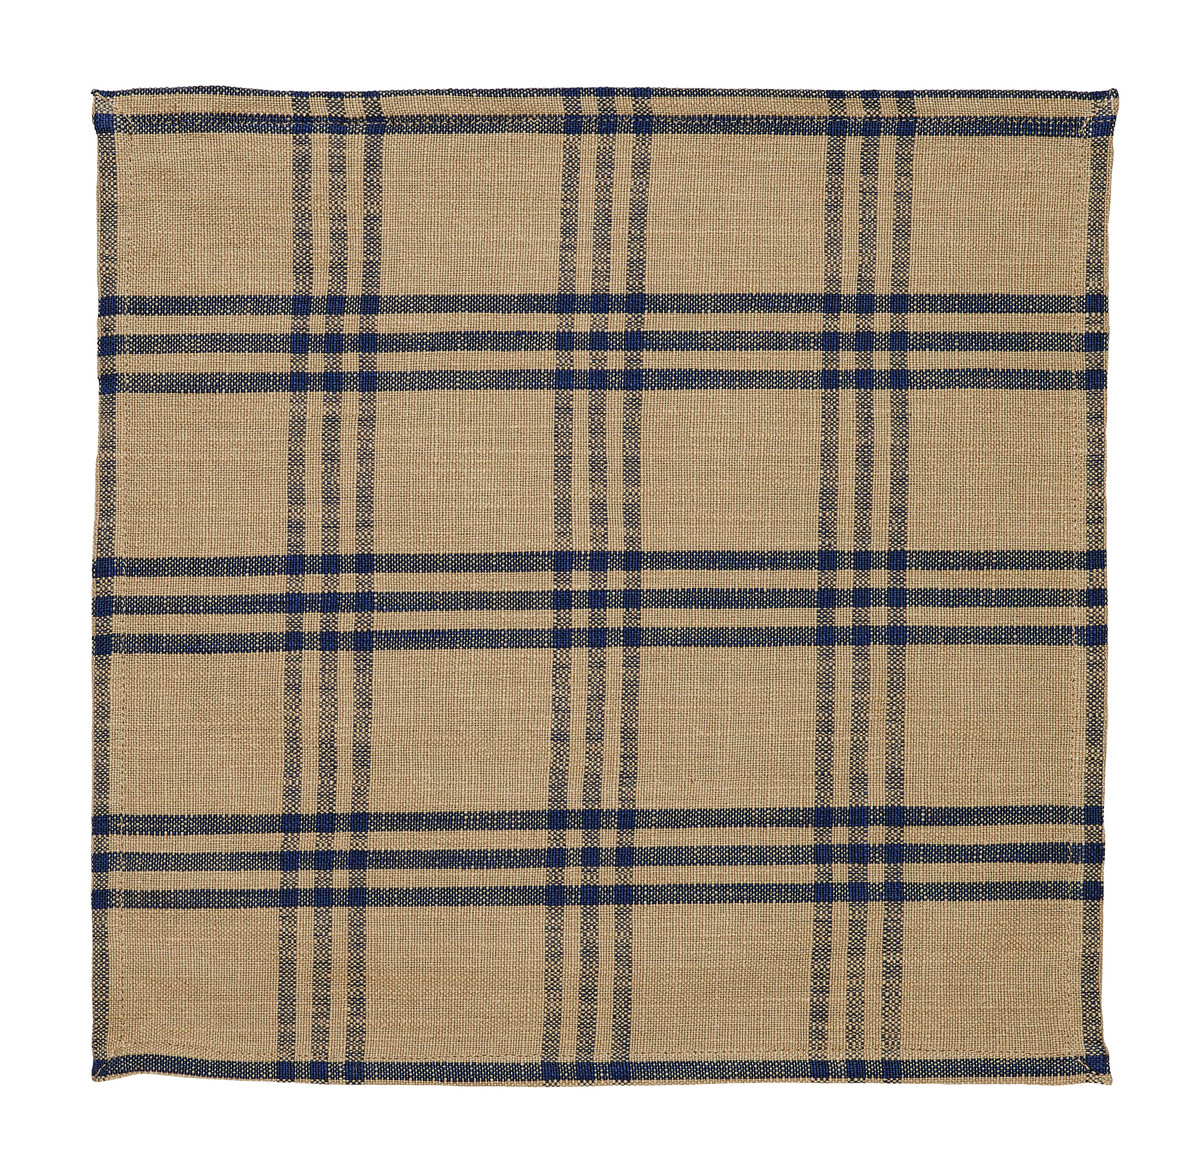 Cottonwood Blue Plaid, by Olivia's Heartland